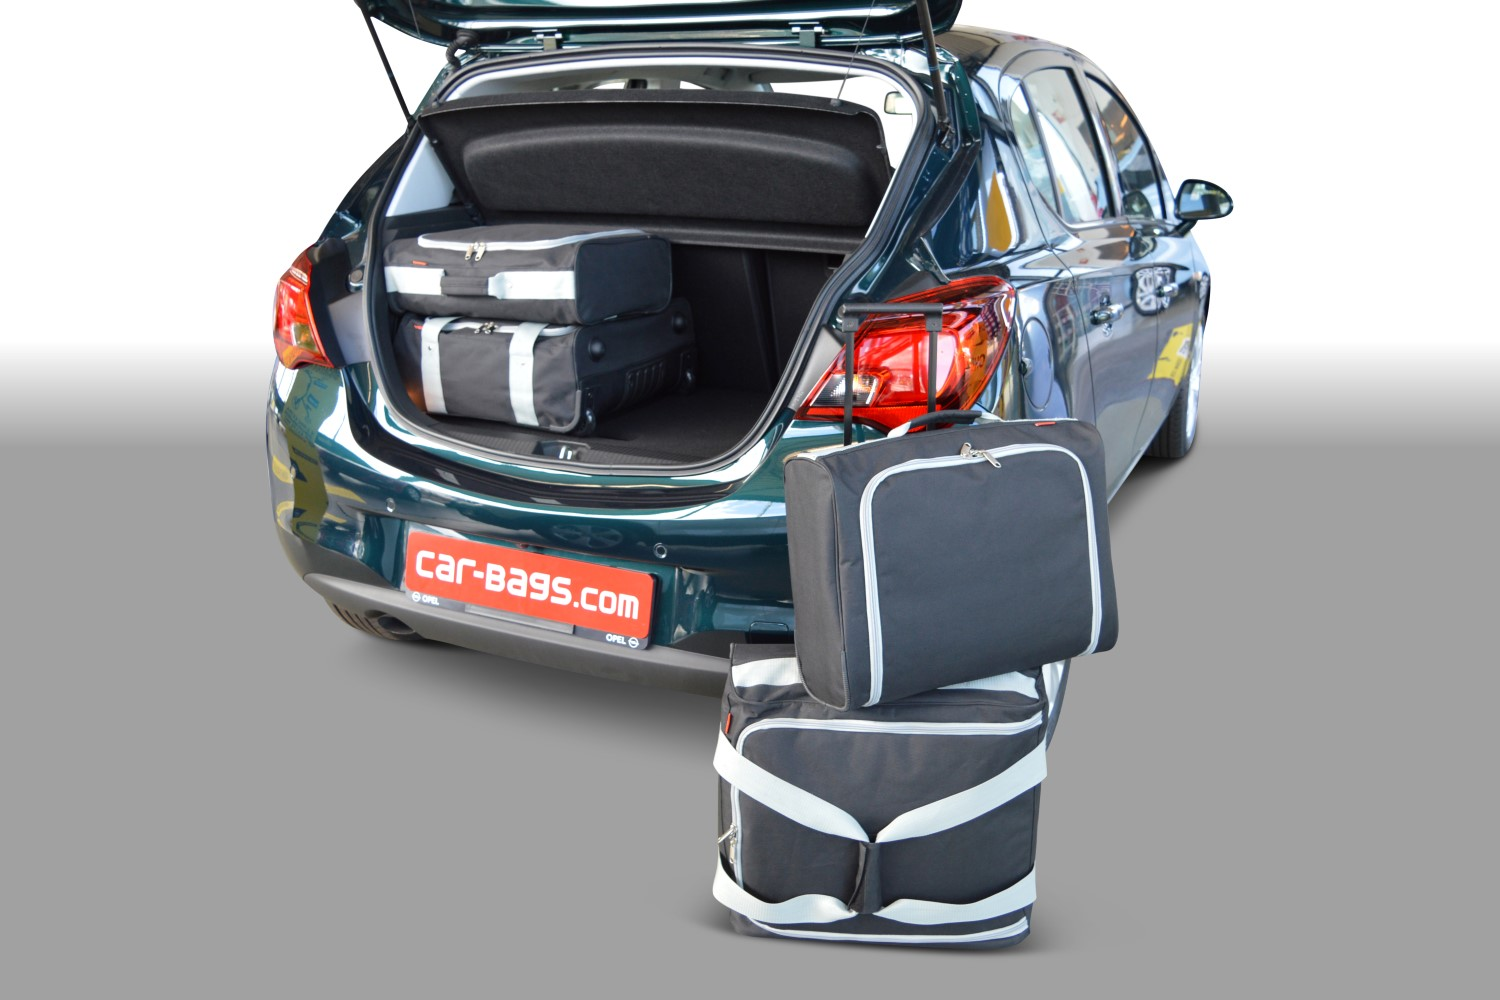 corsa opel corsa e 2014 present 5d car bags travel bags. Black Bedroom Furniture Sets. Home Design Ideas